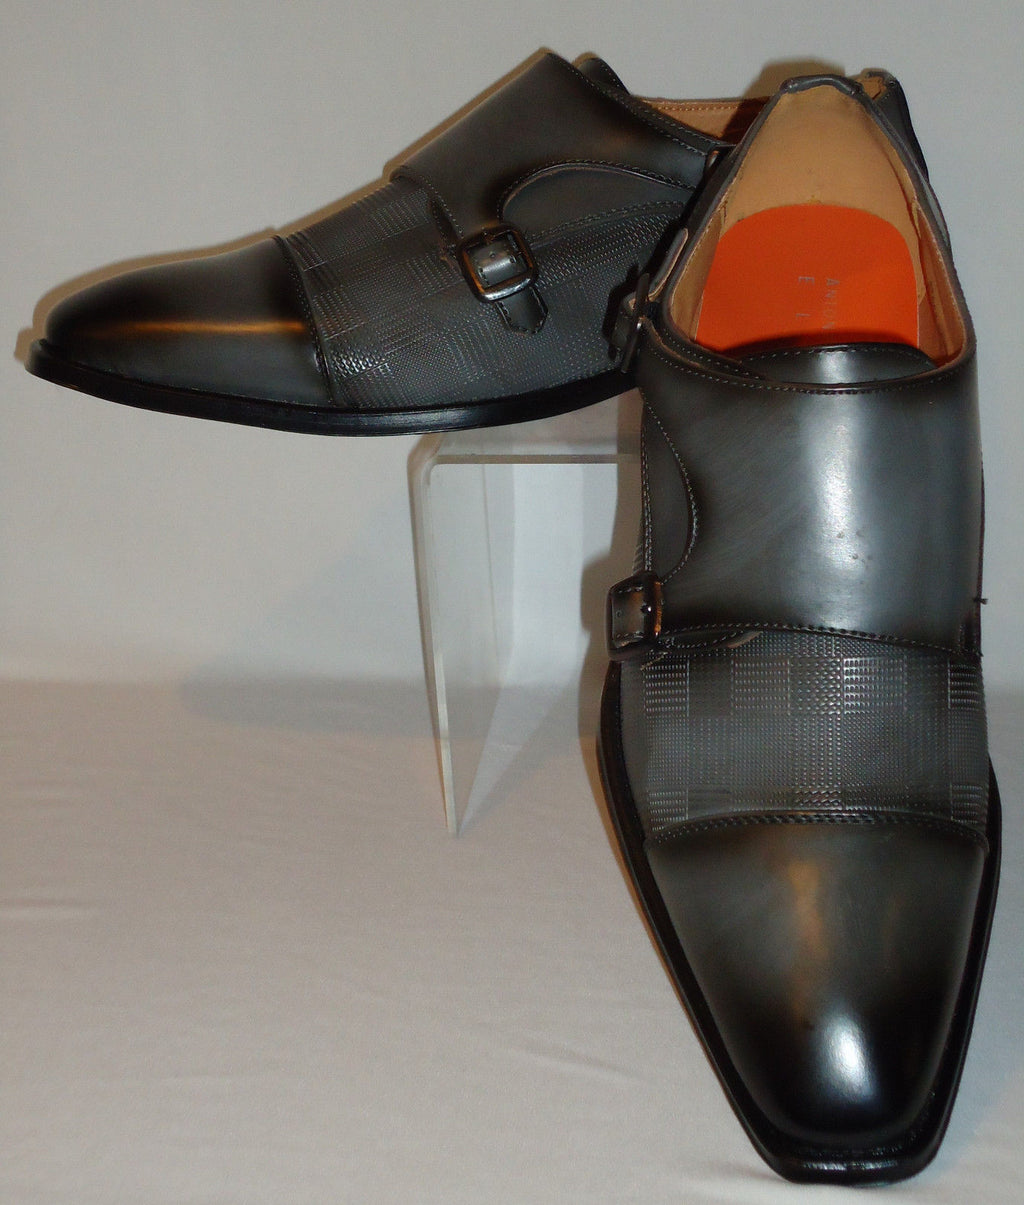 Mens Gray Double Buckle & Hounds Tooth Dress Loafers Shoes Antonio Cerrelli 6670 - Nader Fashion Las Vegas